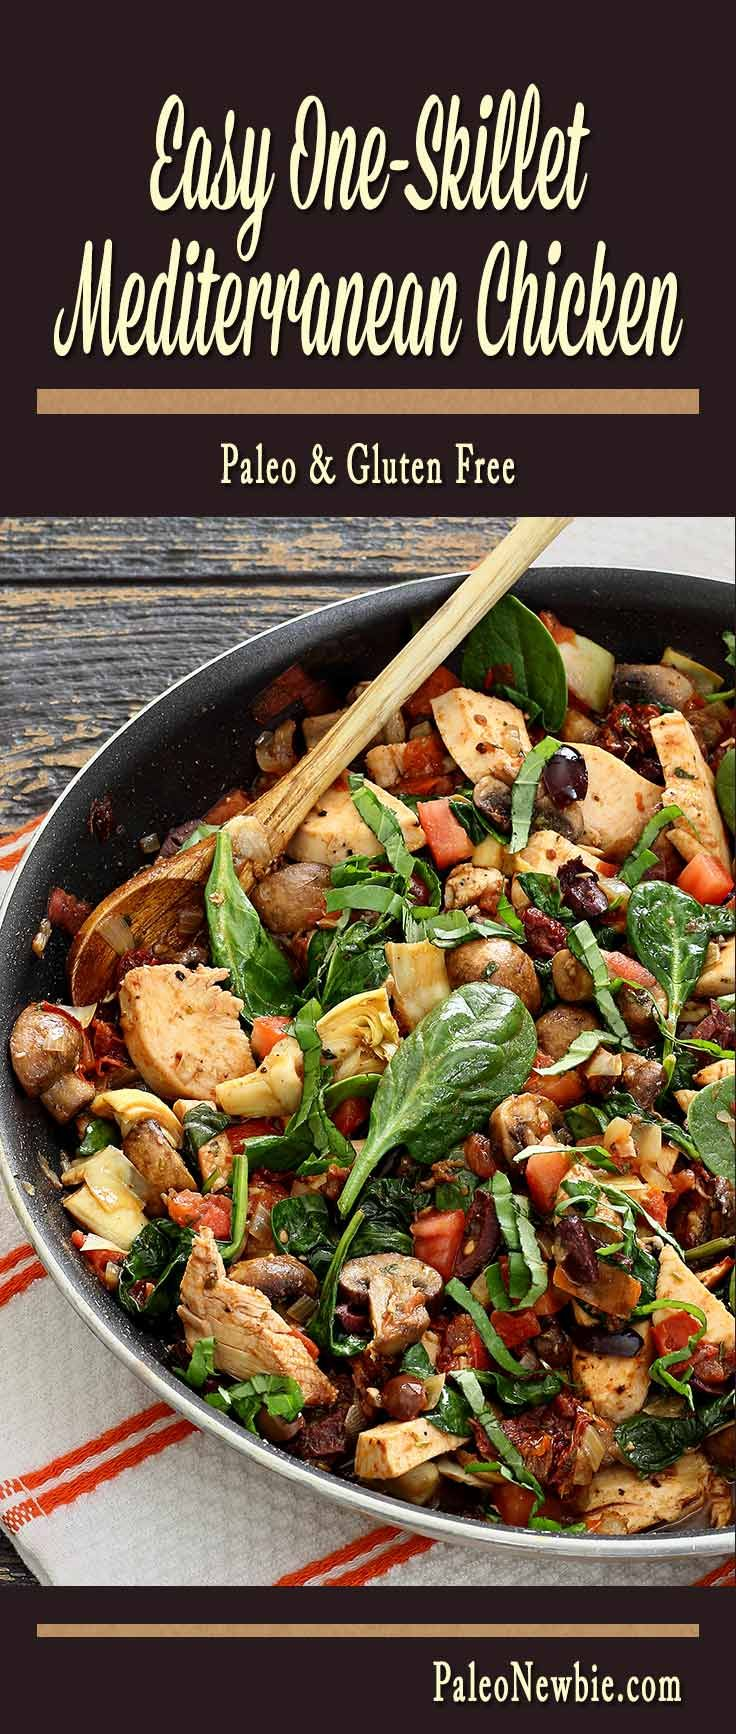 A Mediterranean-inspired meal that takes just minutes to prepare! This colorful coastal dish is layered with lean protein, fresh veggies, and intense flavors. One-pan clean up!